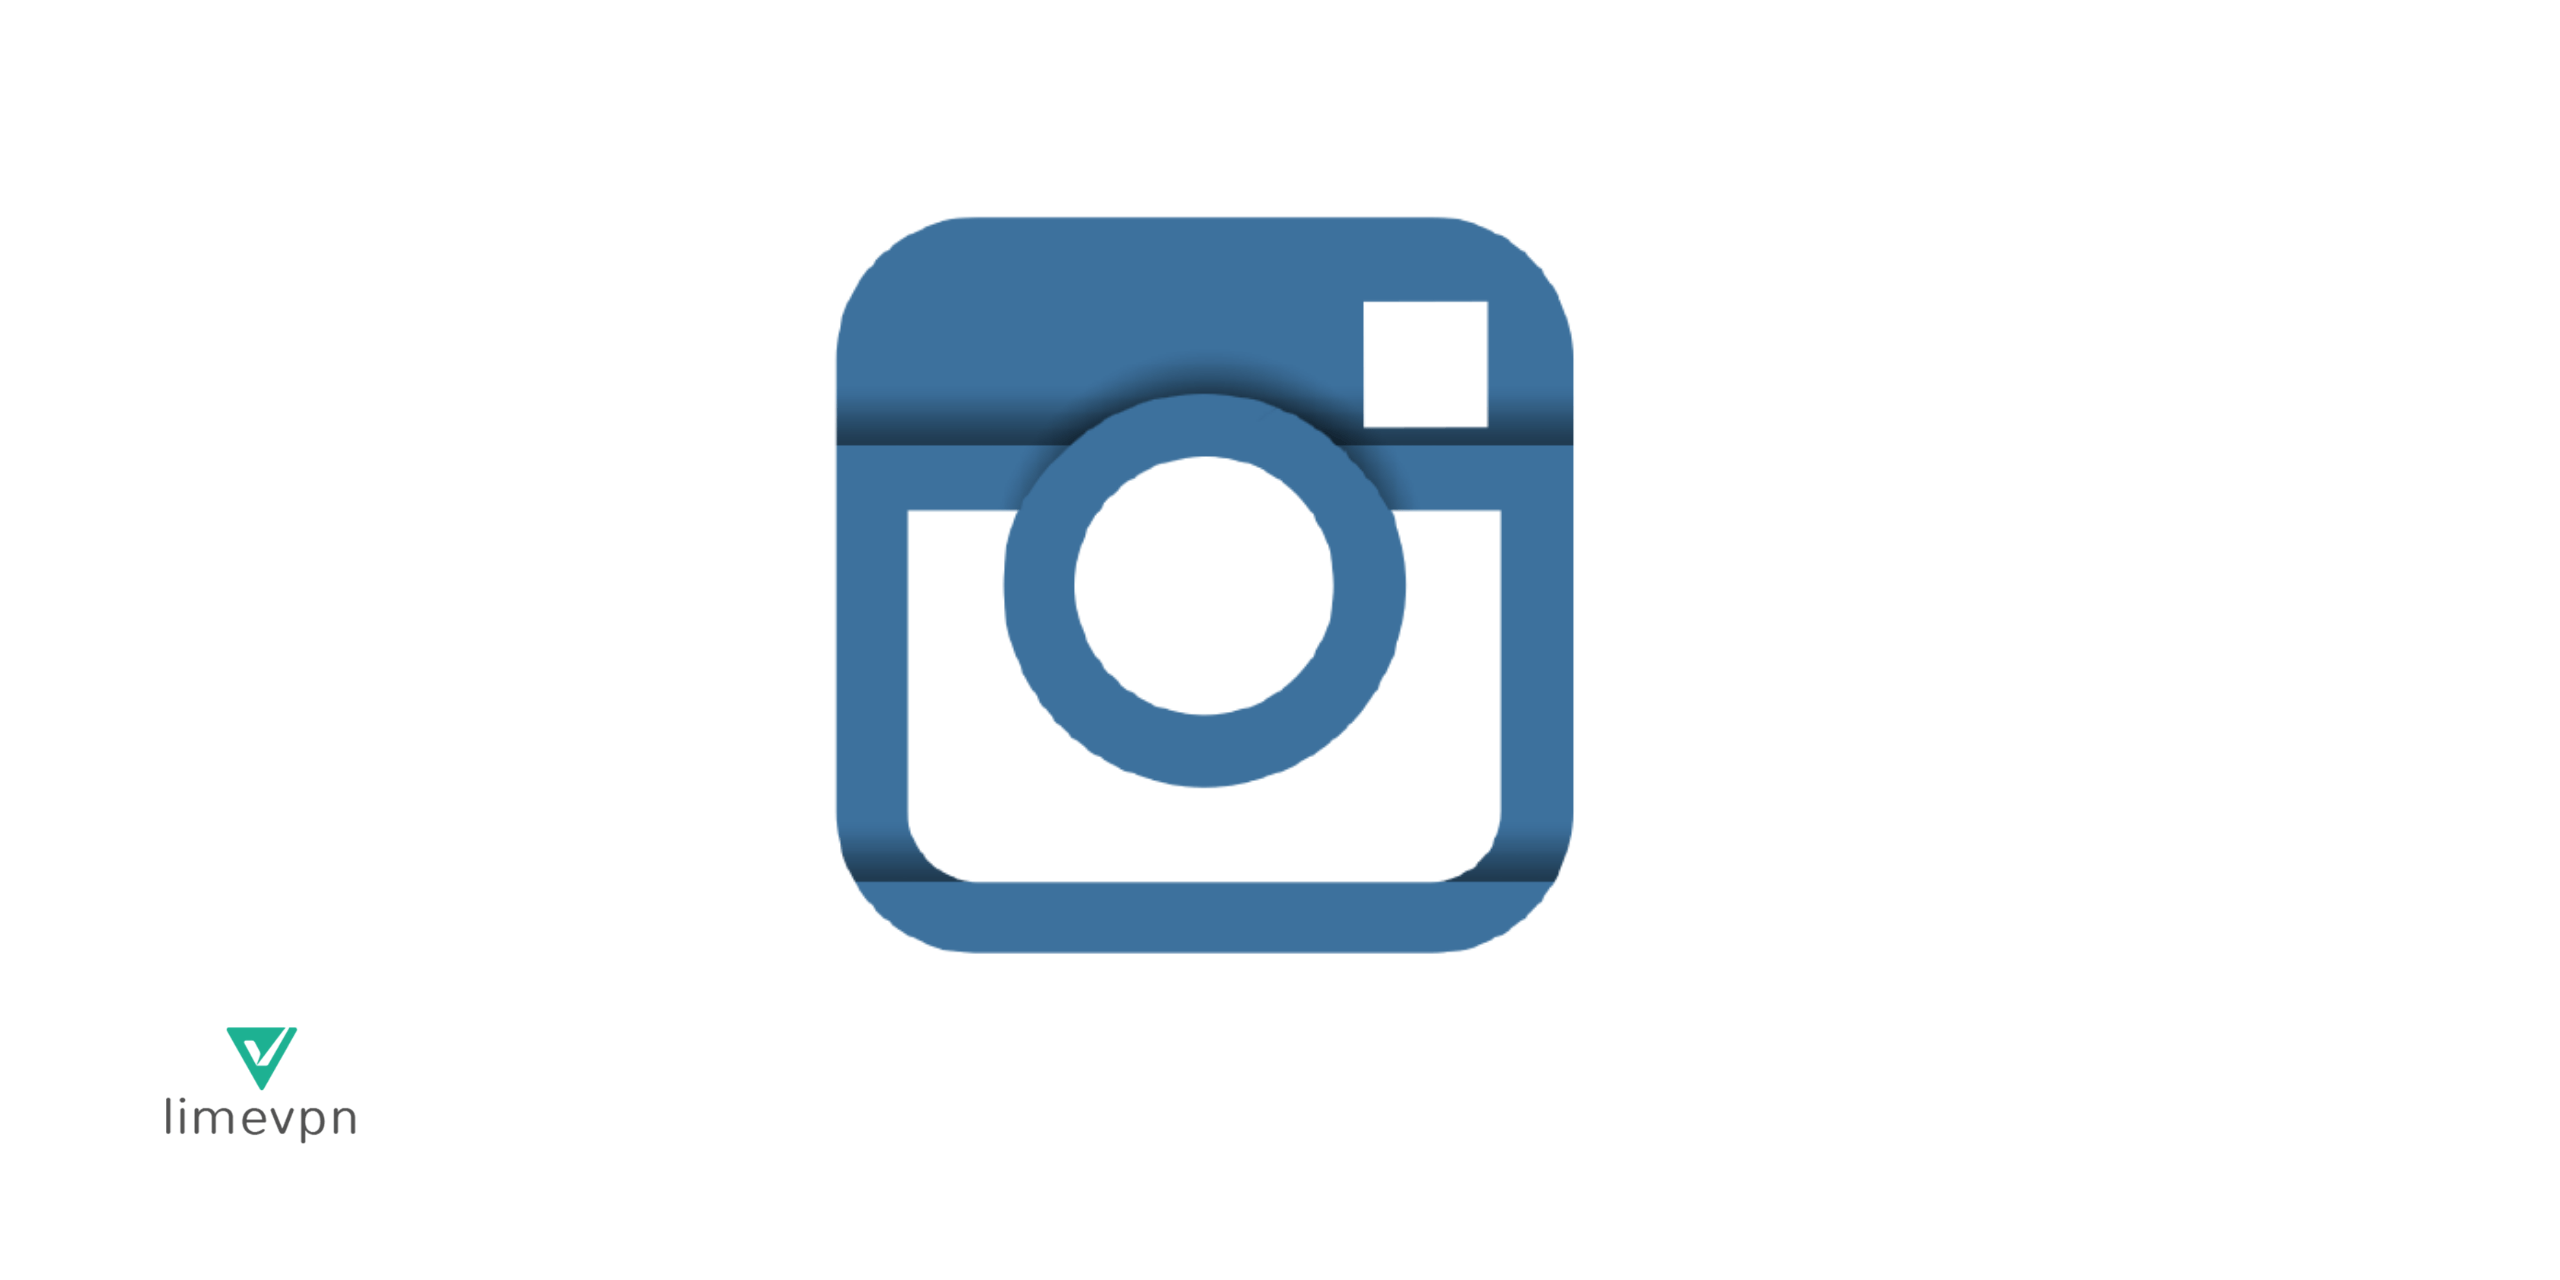 Instagram could have let hackers capture your device